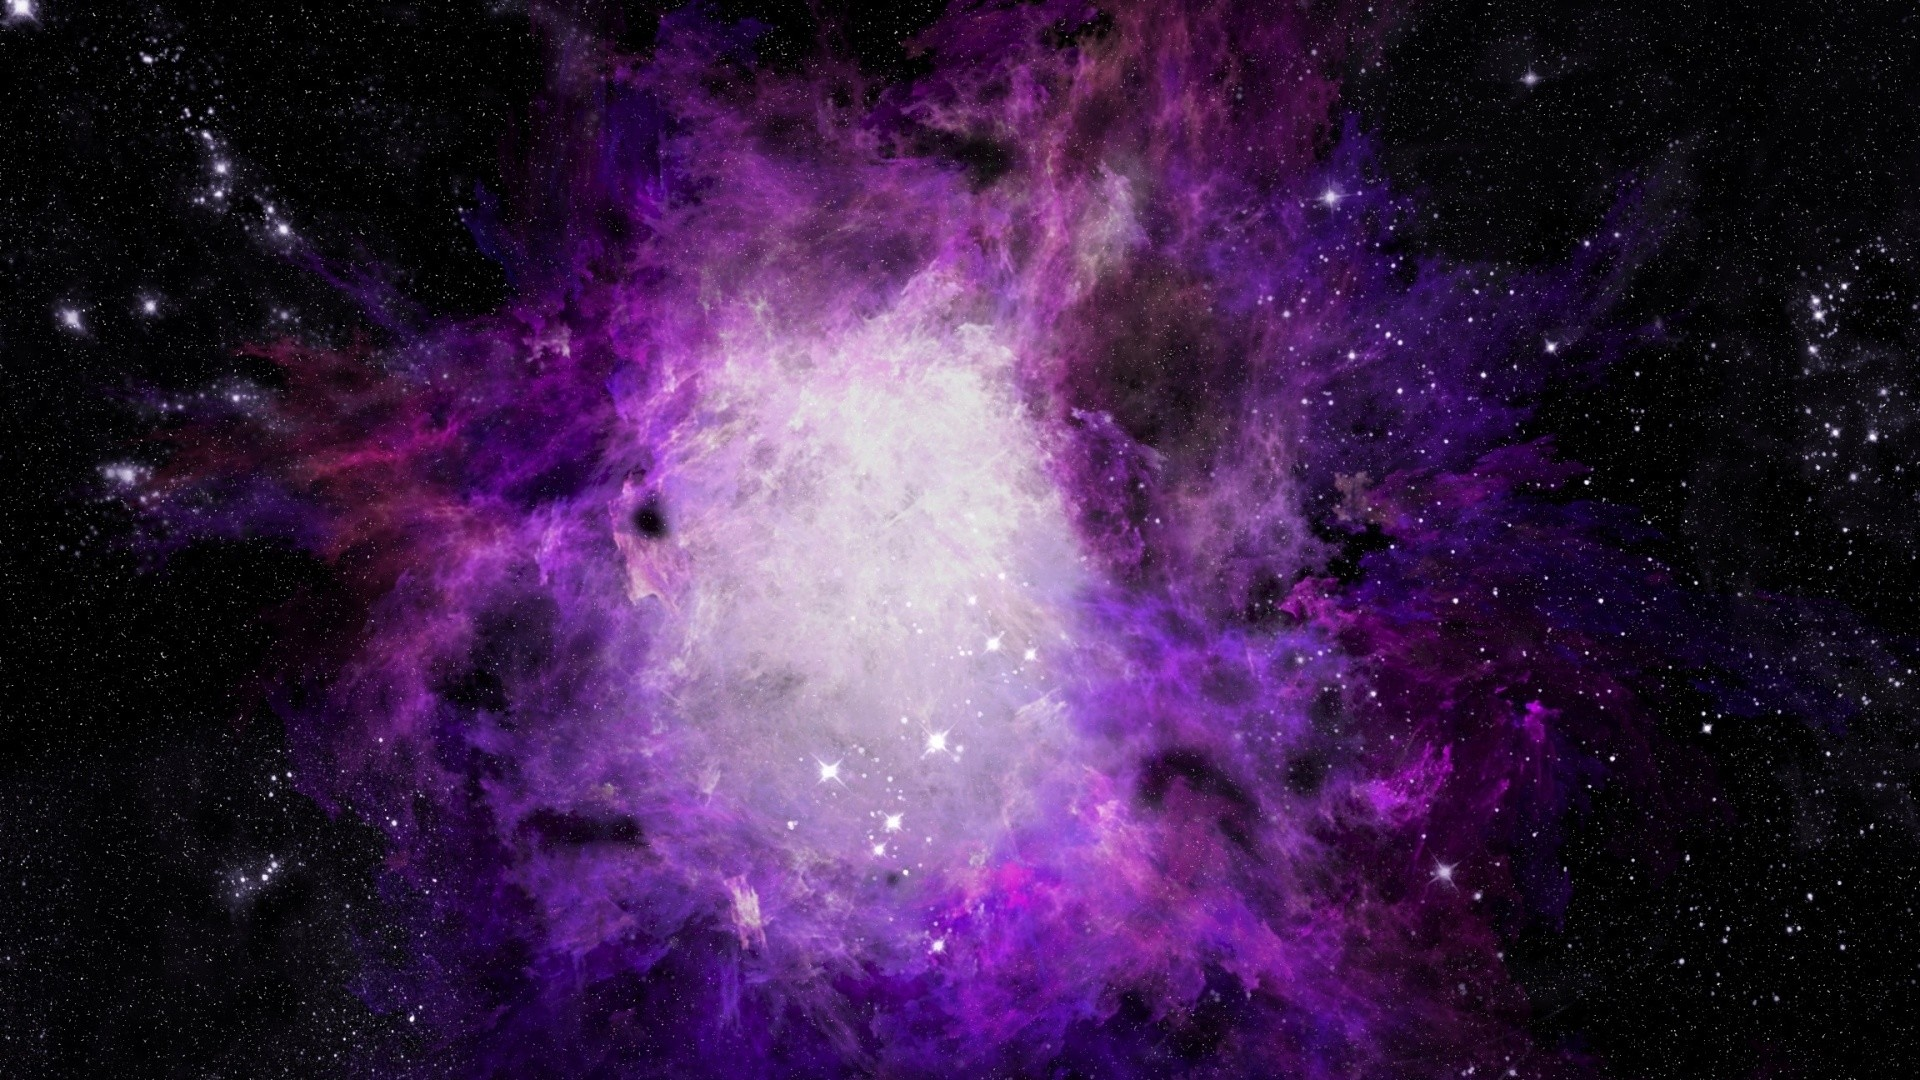 1920x1080 Purple Galaxy Picture For Desktop Wallpaper 1920 x 1080 px 623.08 KB purple  blue 1080p moon